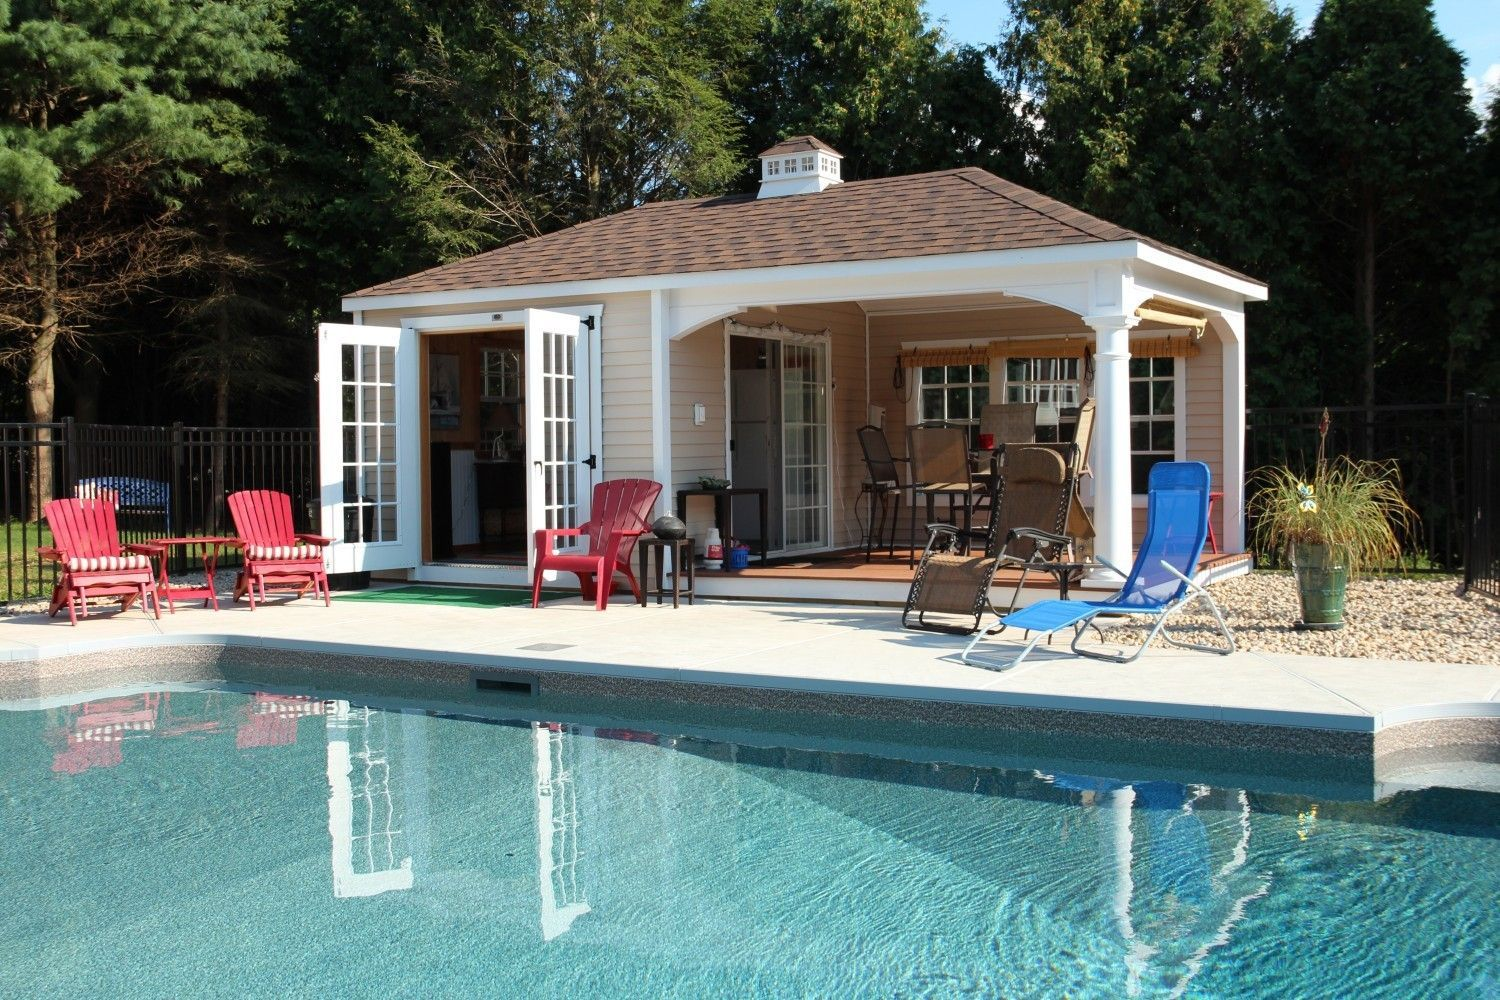 10 Backyard Pool House Ideas Most Creative And Also Grand Too Small Pool Houses Pool House Shed Pool House Designs